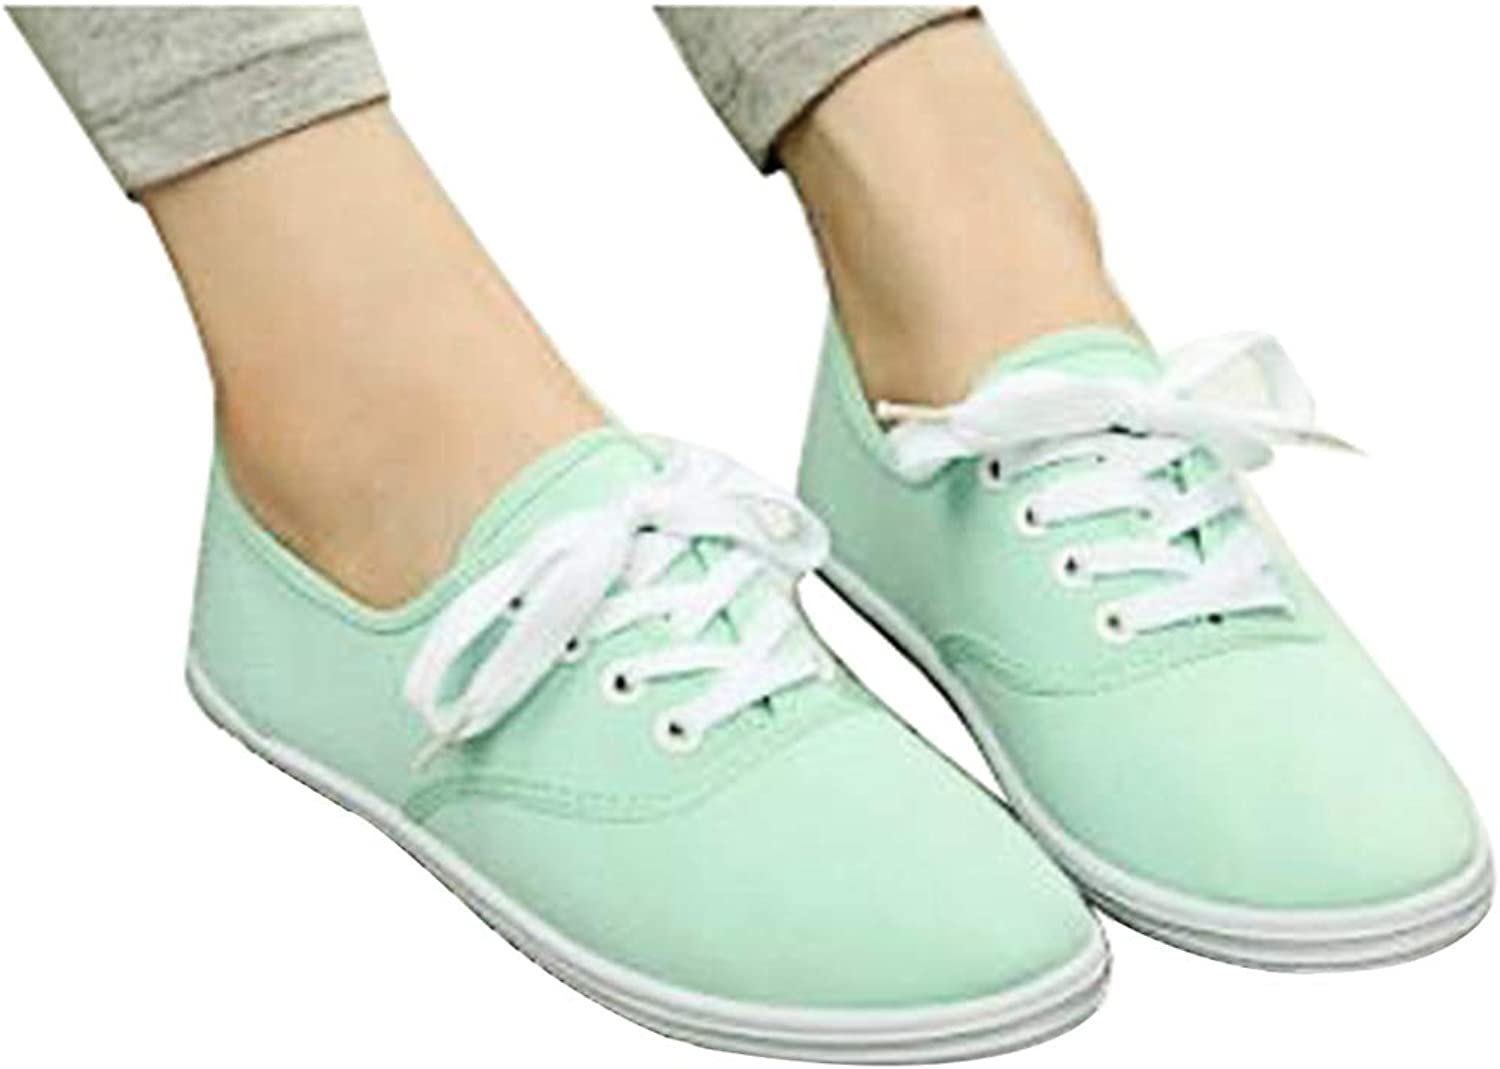 York Zhu Woman Flats White shoes Lace up Casual Canvas shoes Candy color shoes